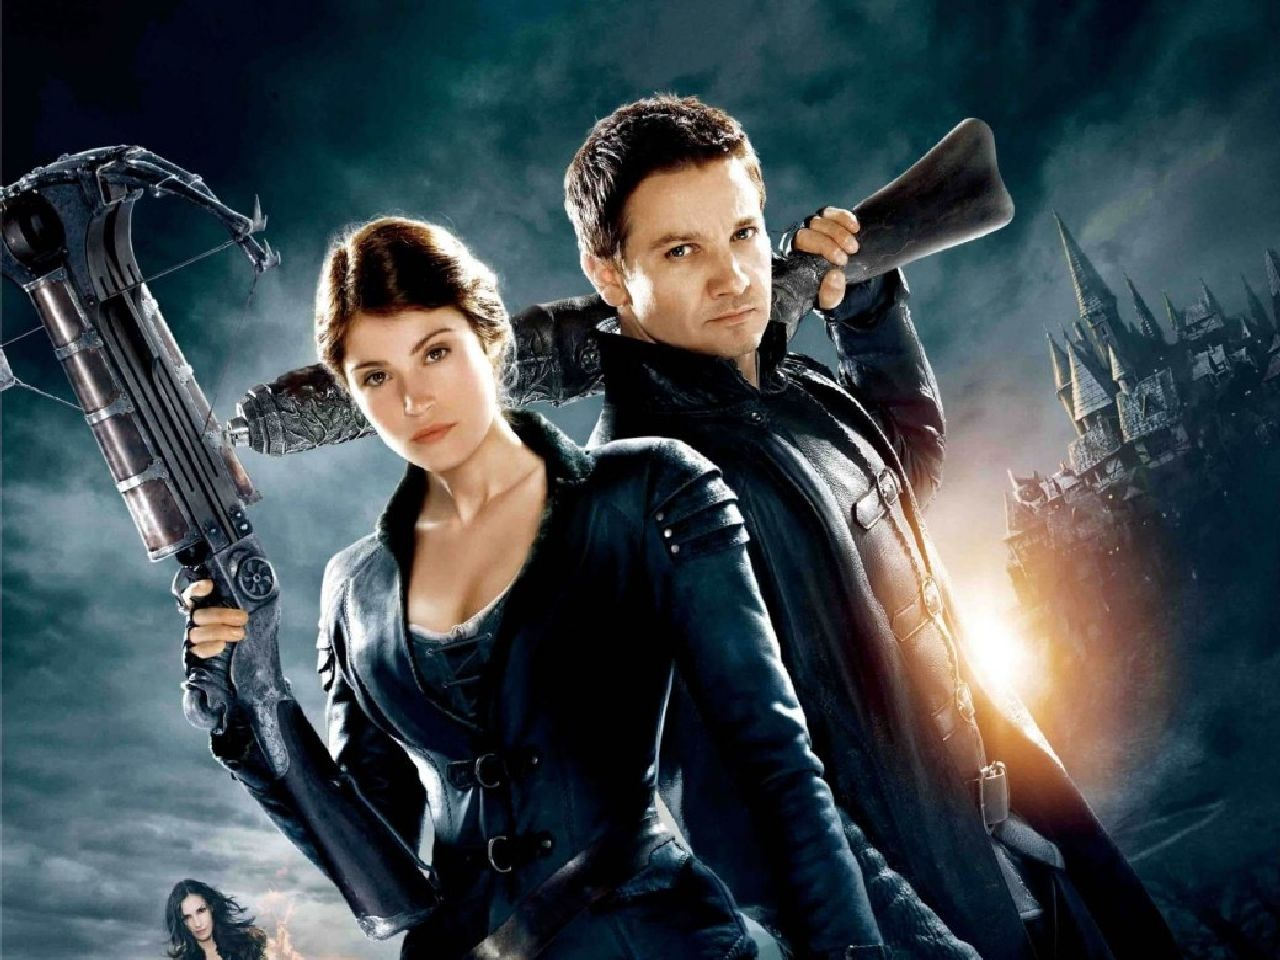 Hansel And Gretel Saw In Imax 3d And I Must Say It Was Better Than I Thought It Would Be Joao E Maria Filme Bruxas Vilas